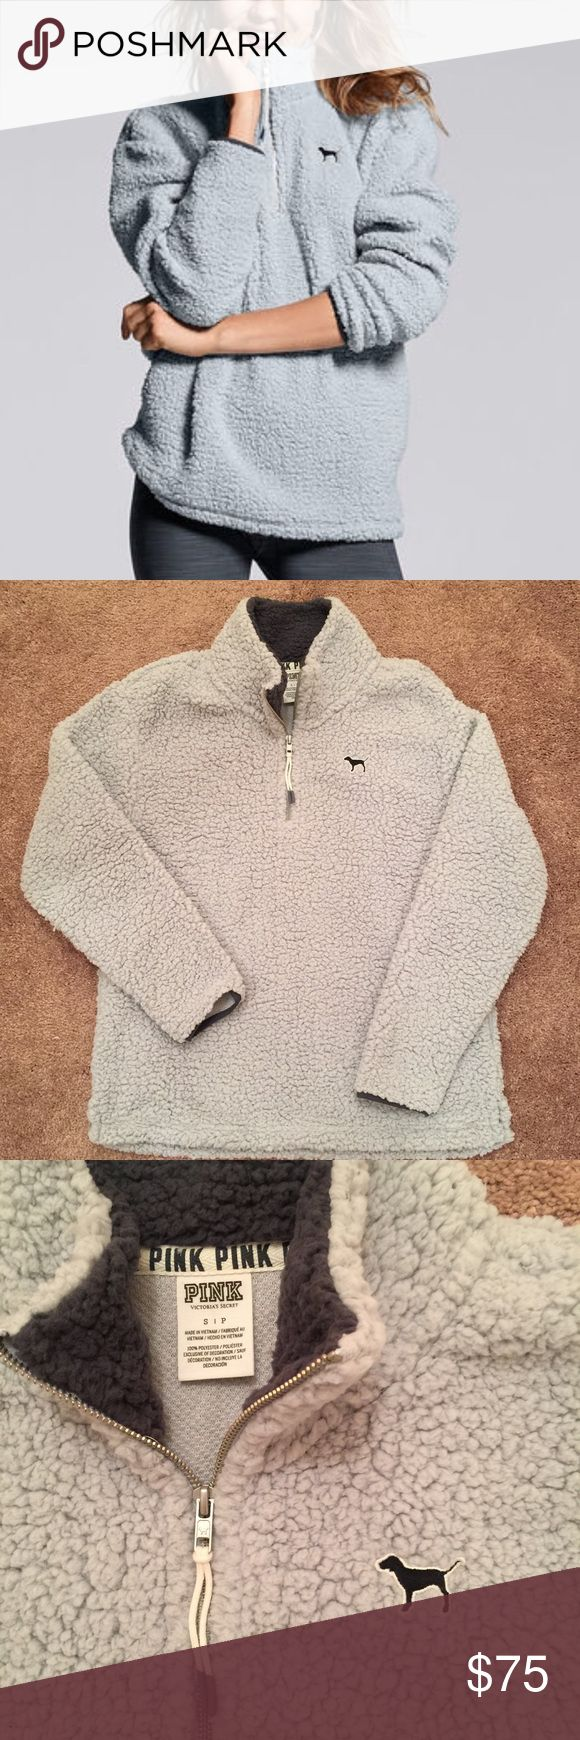 VS Pink Sherpa Boyfriend Half-zip Pullover Sold out online! 100% polyester, SUPER soft! Has pockets and half zip up. Brand new without tags, NEVER BEEN WORN, smoke and pet free home. Color is a very pale grey blue with smoky grey blue accents. NO TRADES PINK Victoria's Secret Tops Sweatshirts & Hoodies